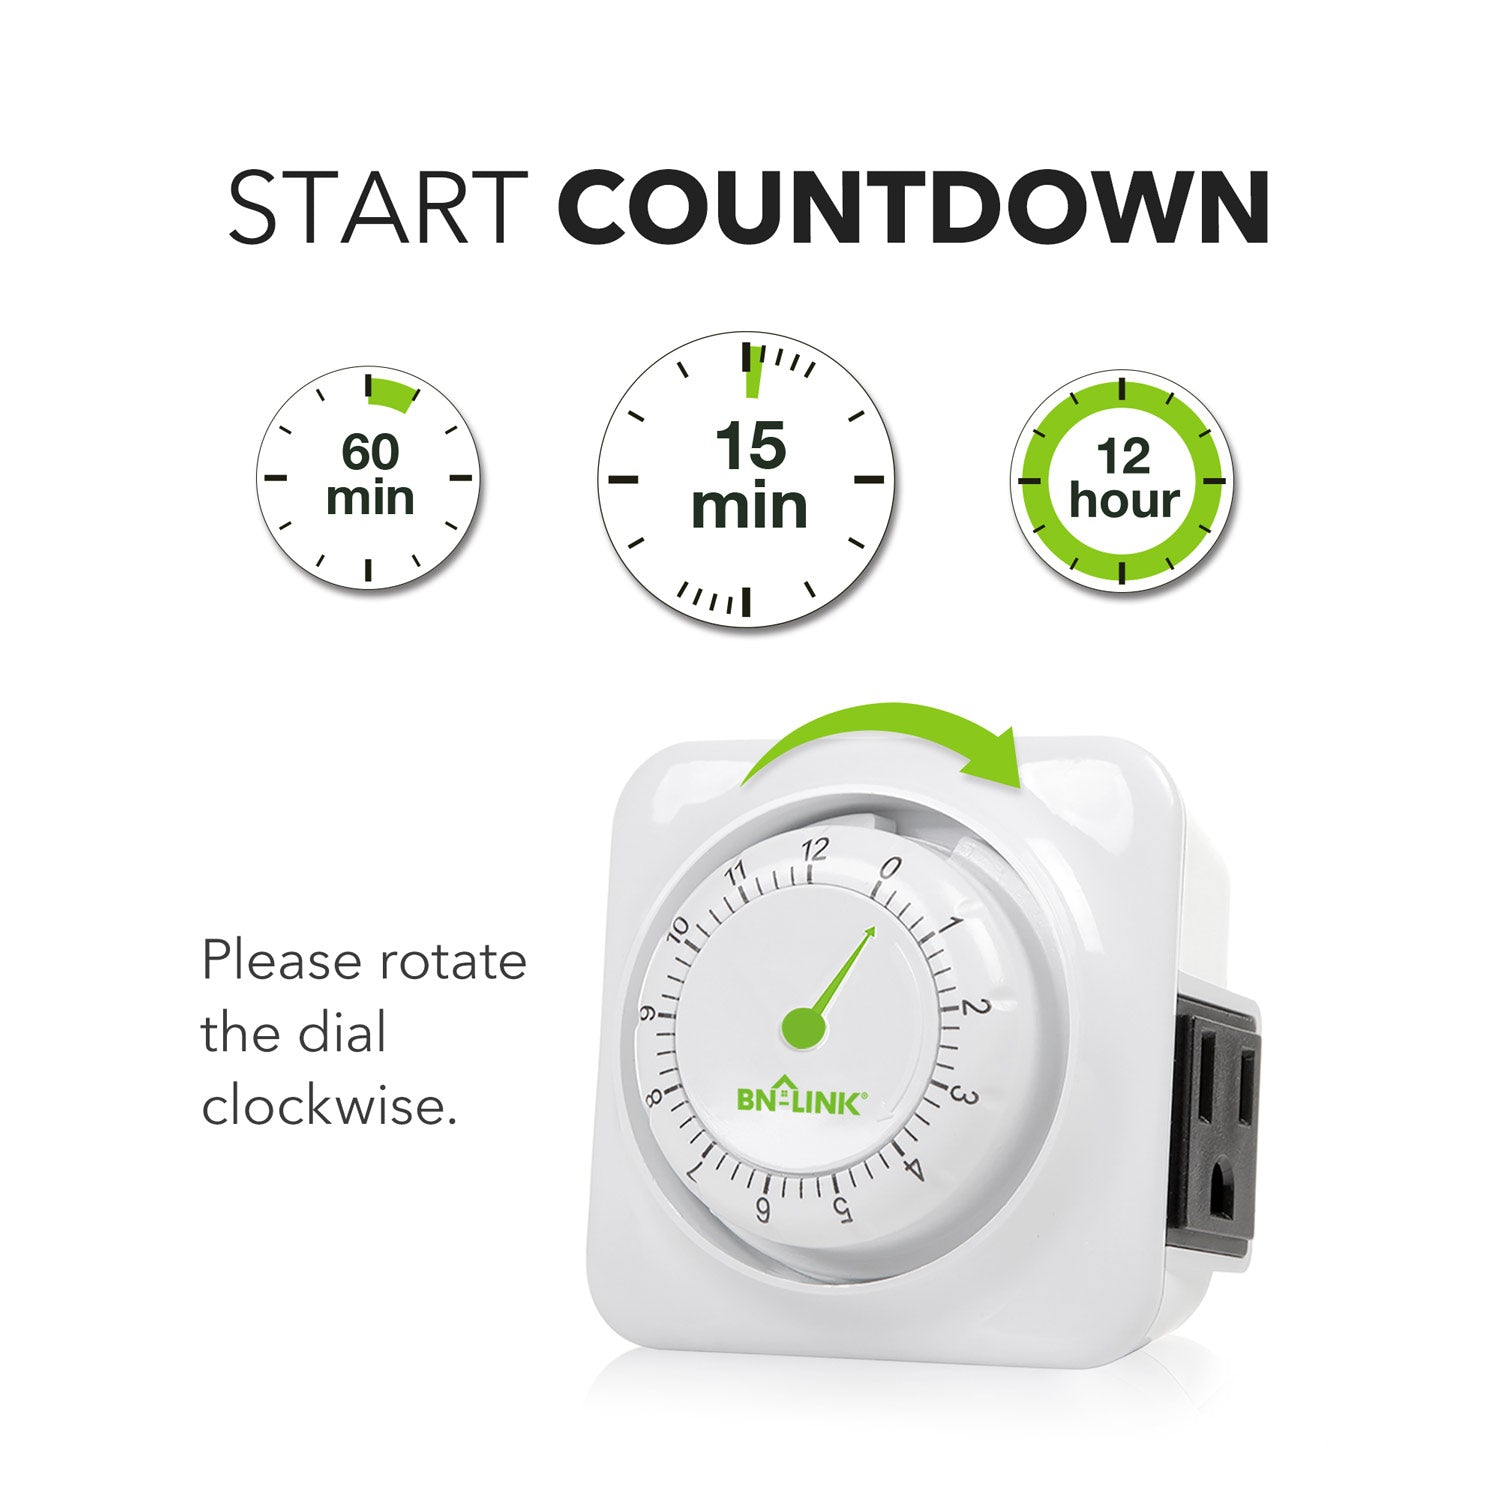 Century 12 Hour Mechanical Countdown Timer with Grounded Pin Energy Saving